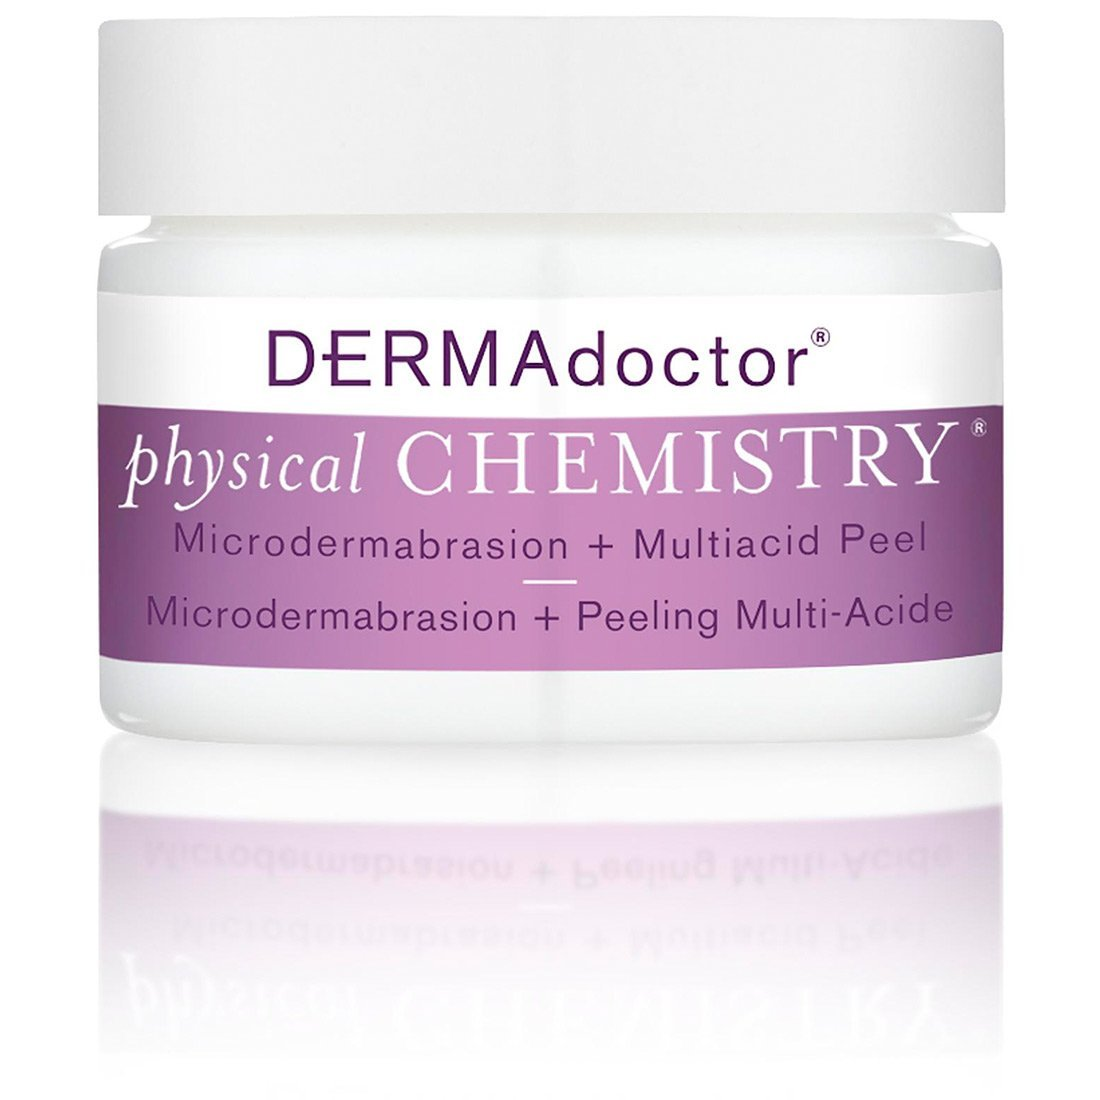 DERMAdoctor Physical Chemistry facial microdermabrasion + multiacid chemical peel, 50 ml